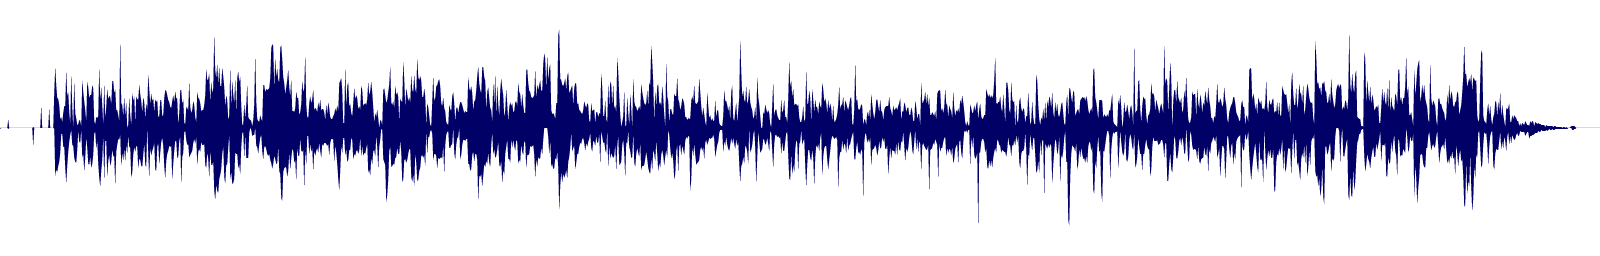 waveform of track #90249